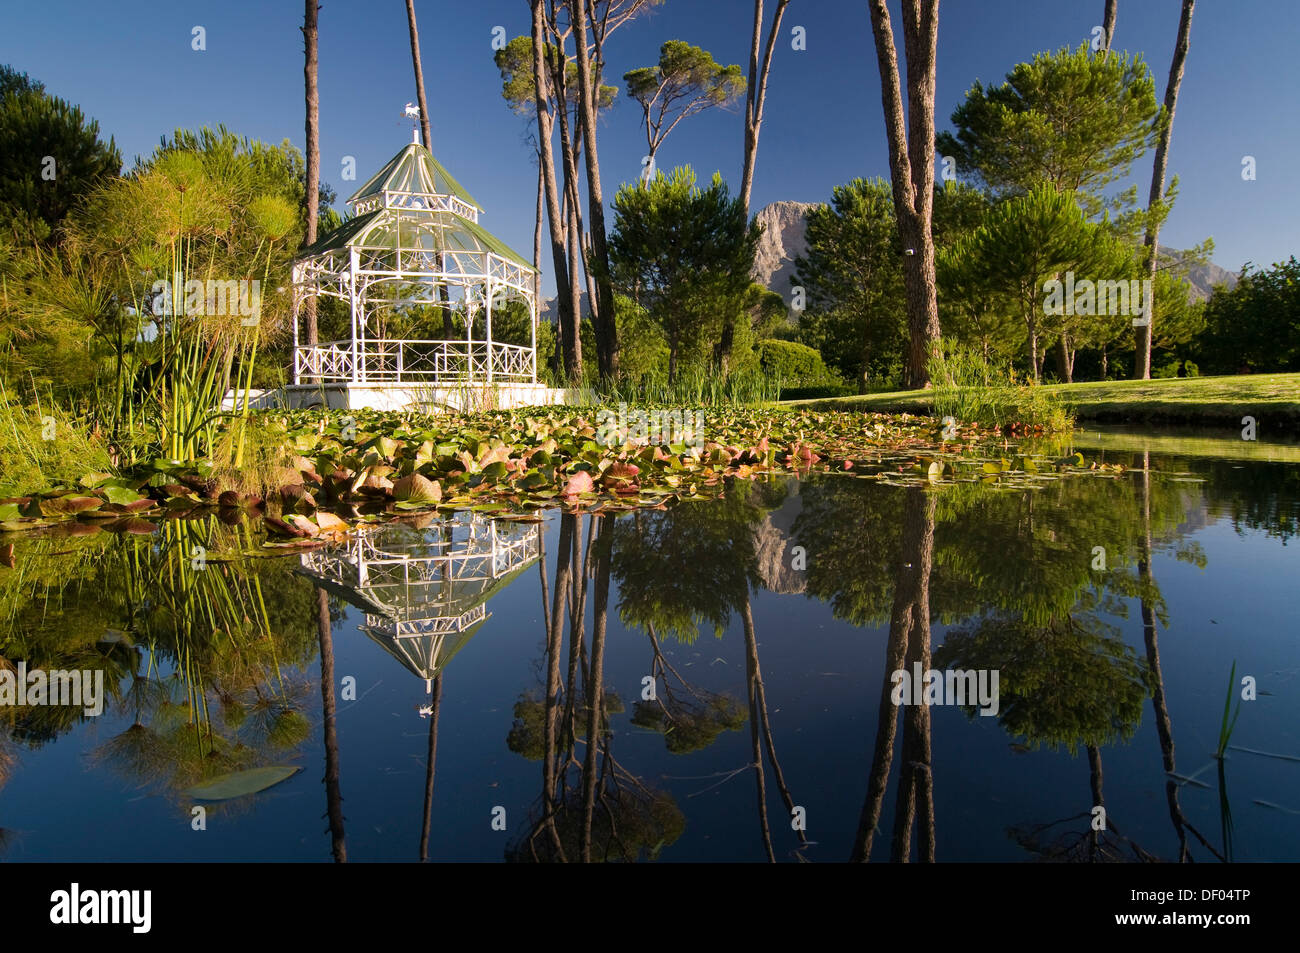 Pond, Boschendal wine estate, between Stellenbosch and Franschhoek, Western Cape, South Africa, Africa - Stock Image